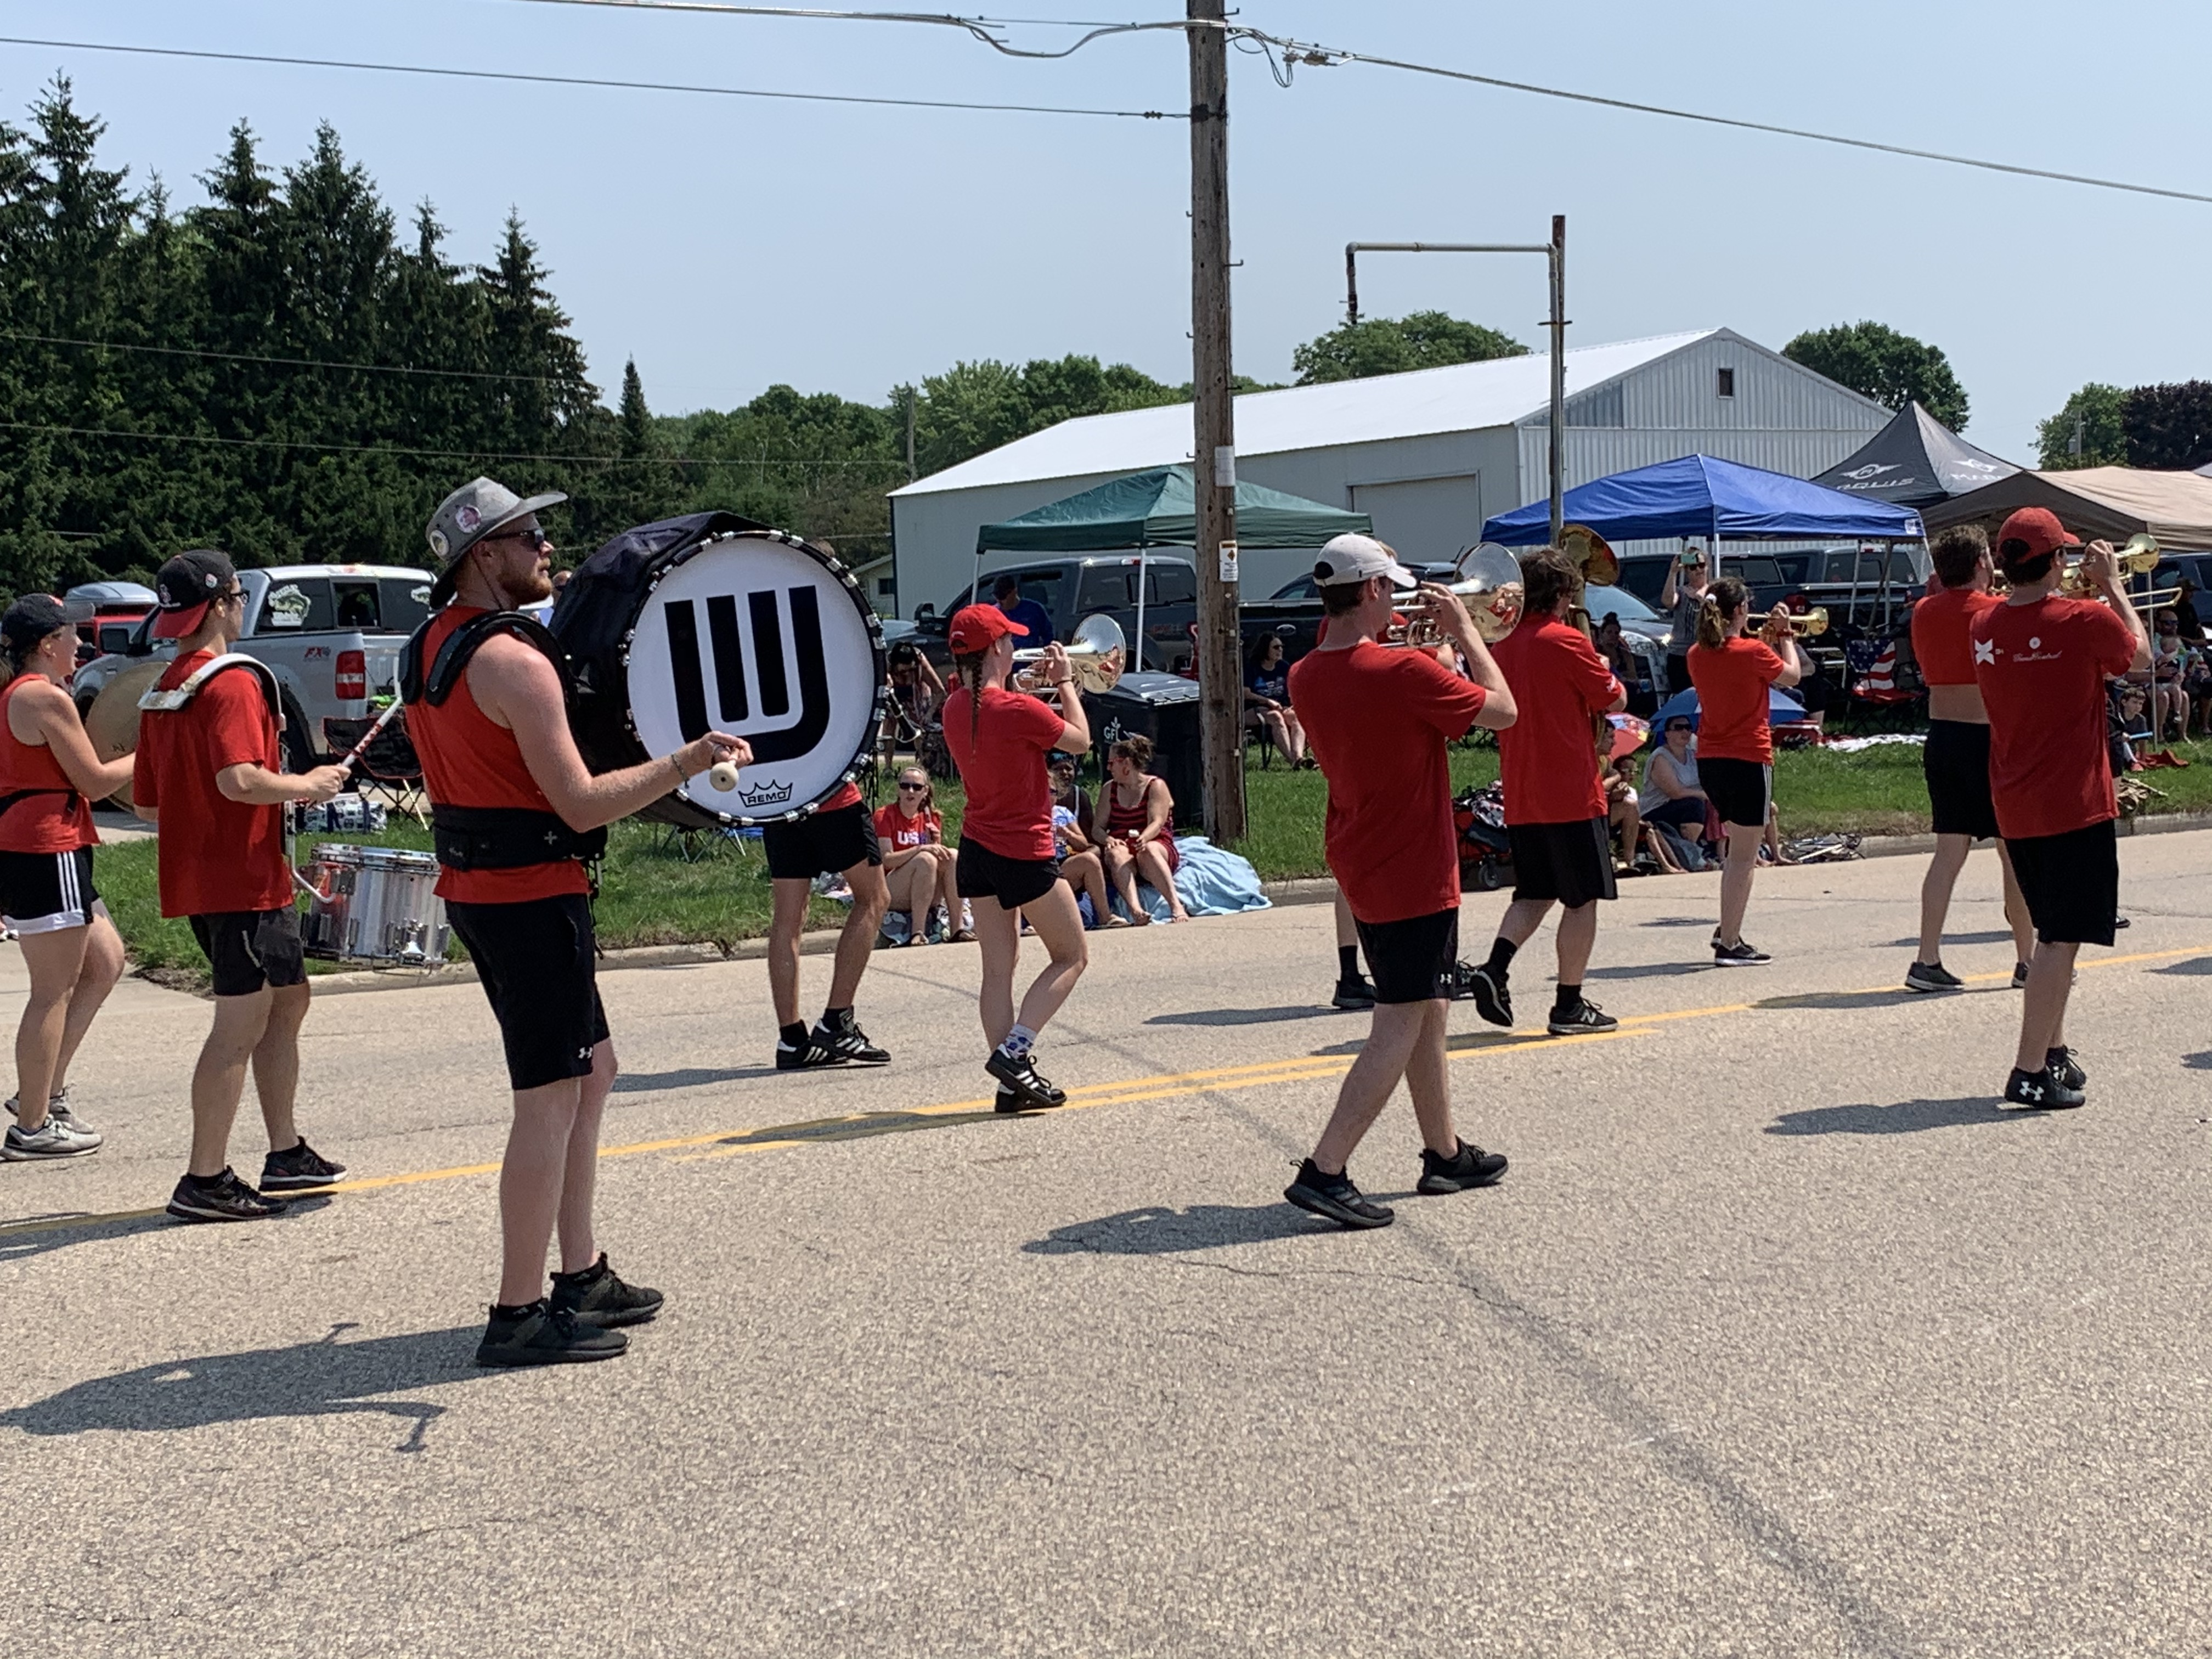 Members of the University of Wisconsin marching band provide music, while taking part in the Fourth of July parade in Bonduel on July 4.Luke Reimer   NEW Media